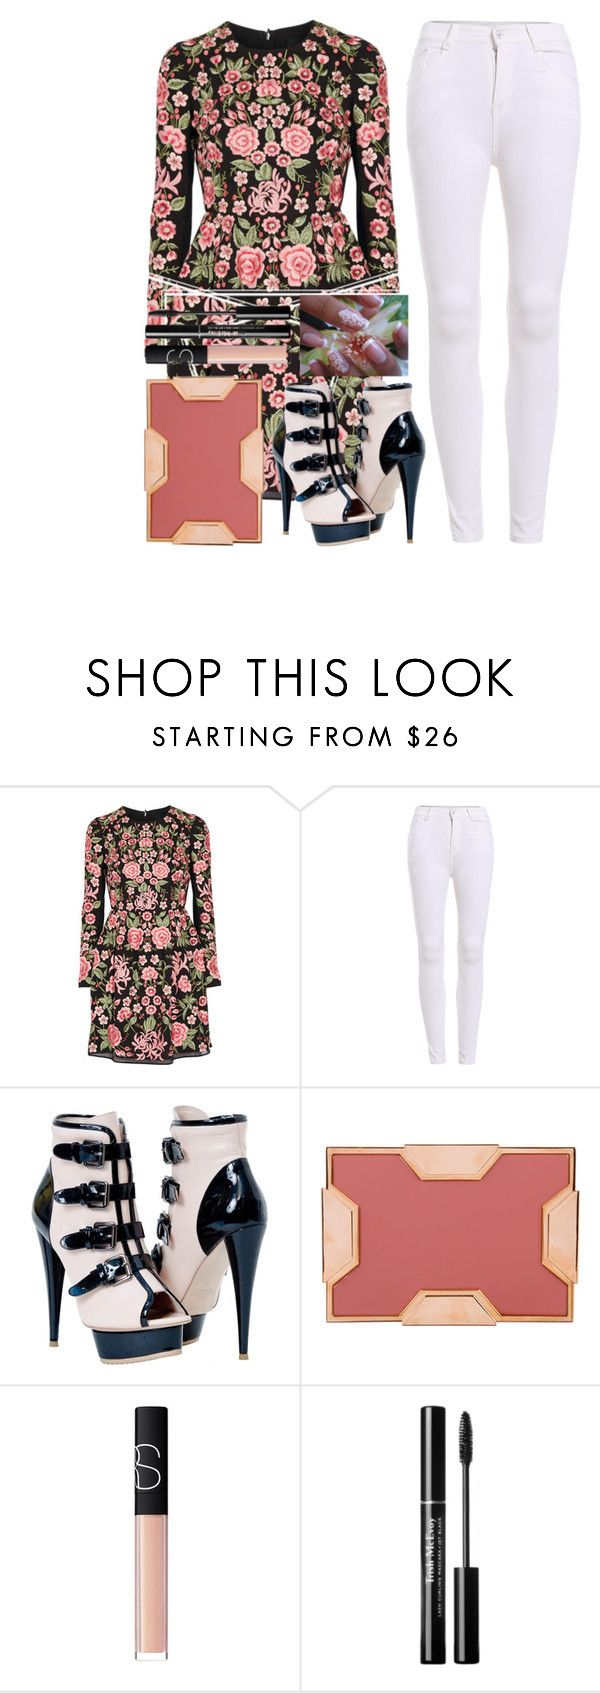 """Untitled #720"" by looks-lie ❤ liked on Polyvore featuring Needle & Thread, Lee Savage and NARS Cosmetics"